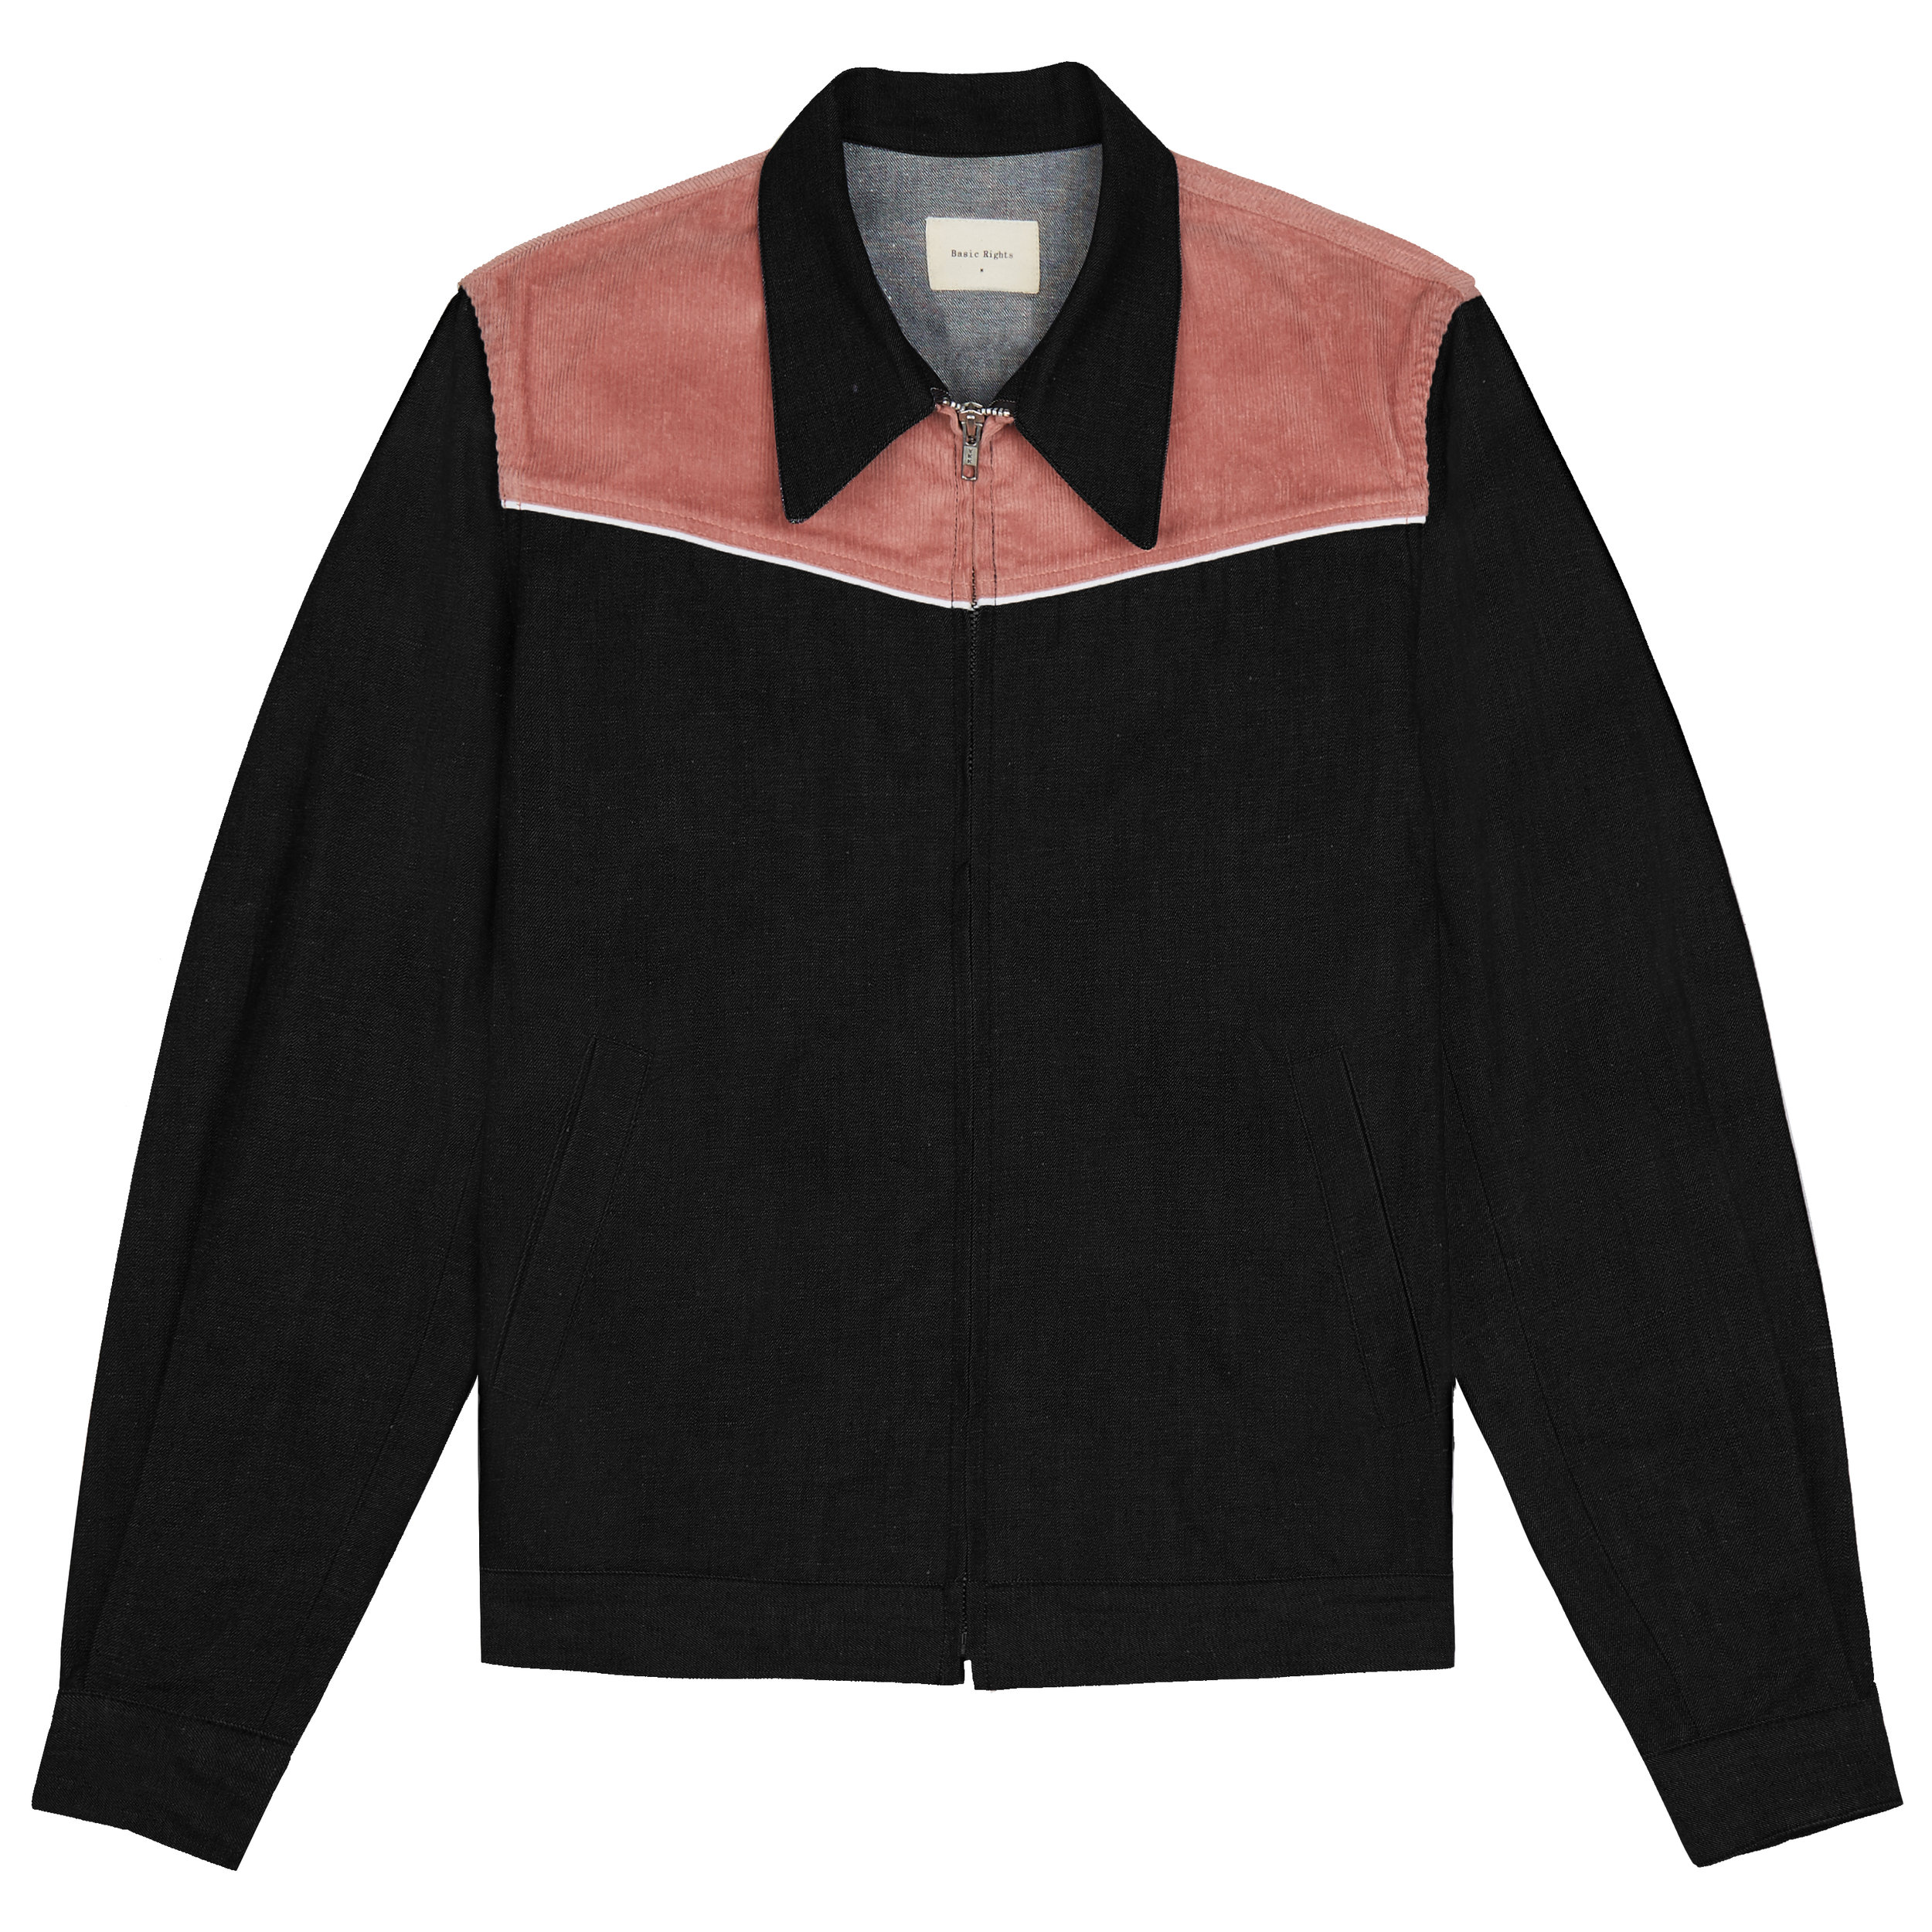 Basic Rights western jacket - £175 - Achingly cool. Wear with skinny black jeans and Chelsea boots for old school rocker vibes